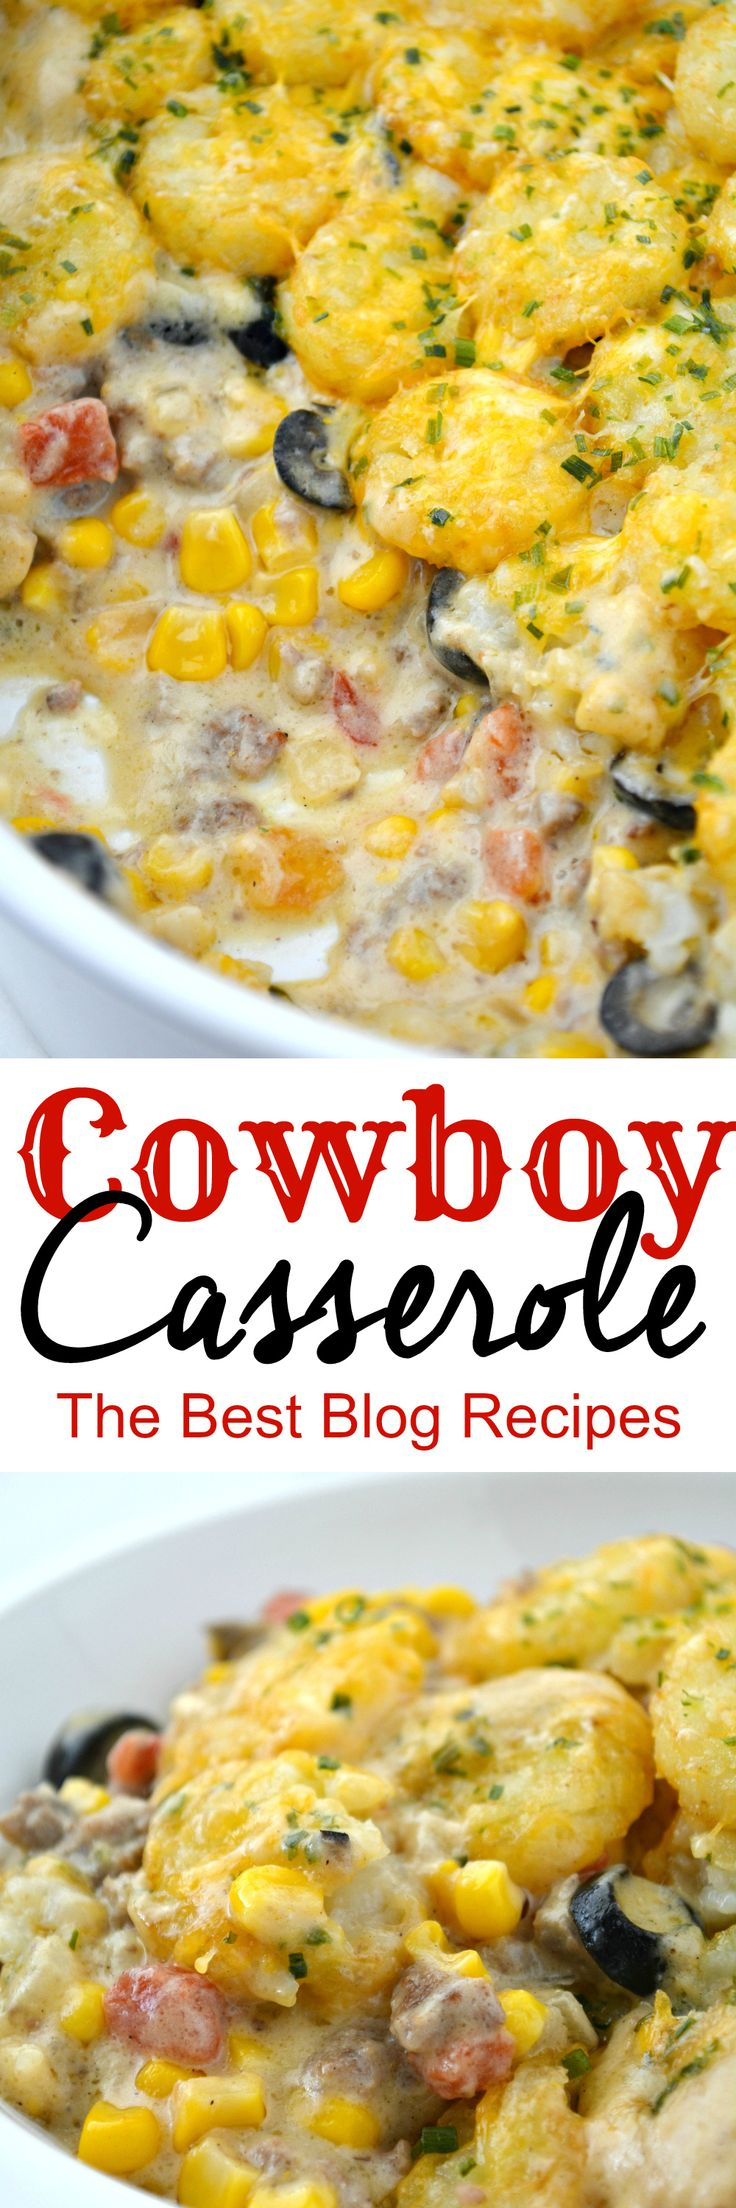 Cowboy Casserole Recipe This was good! Rotel added a little too much spice for kids but we all liked it!will make again!